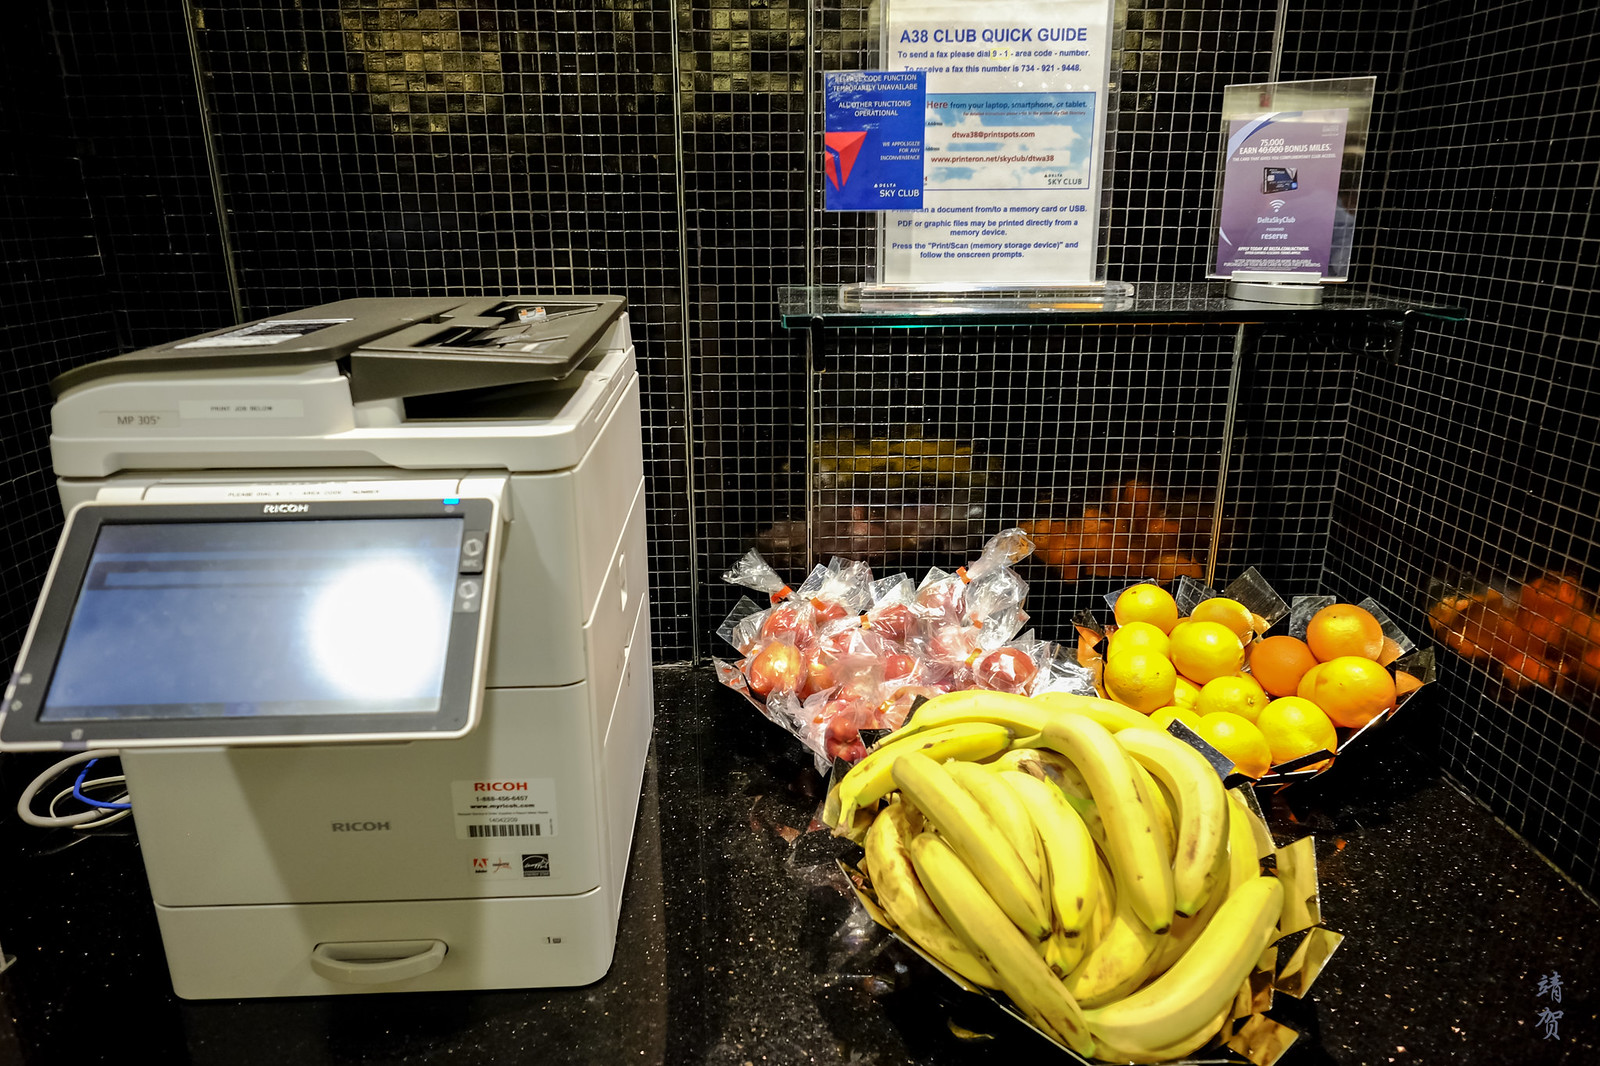 Fresh fruits beside the printer